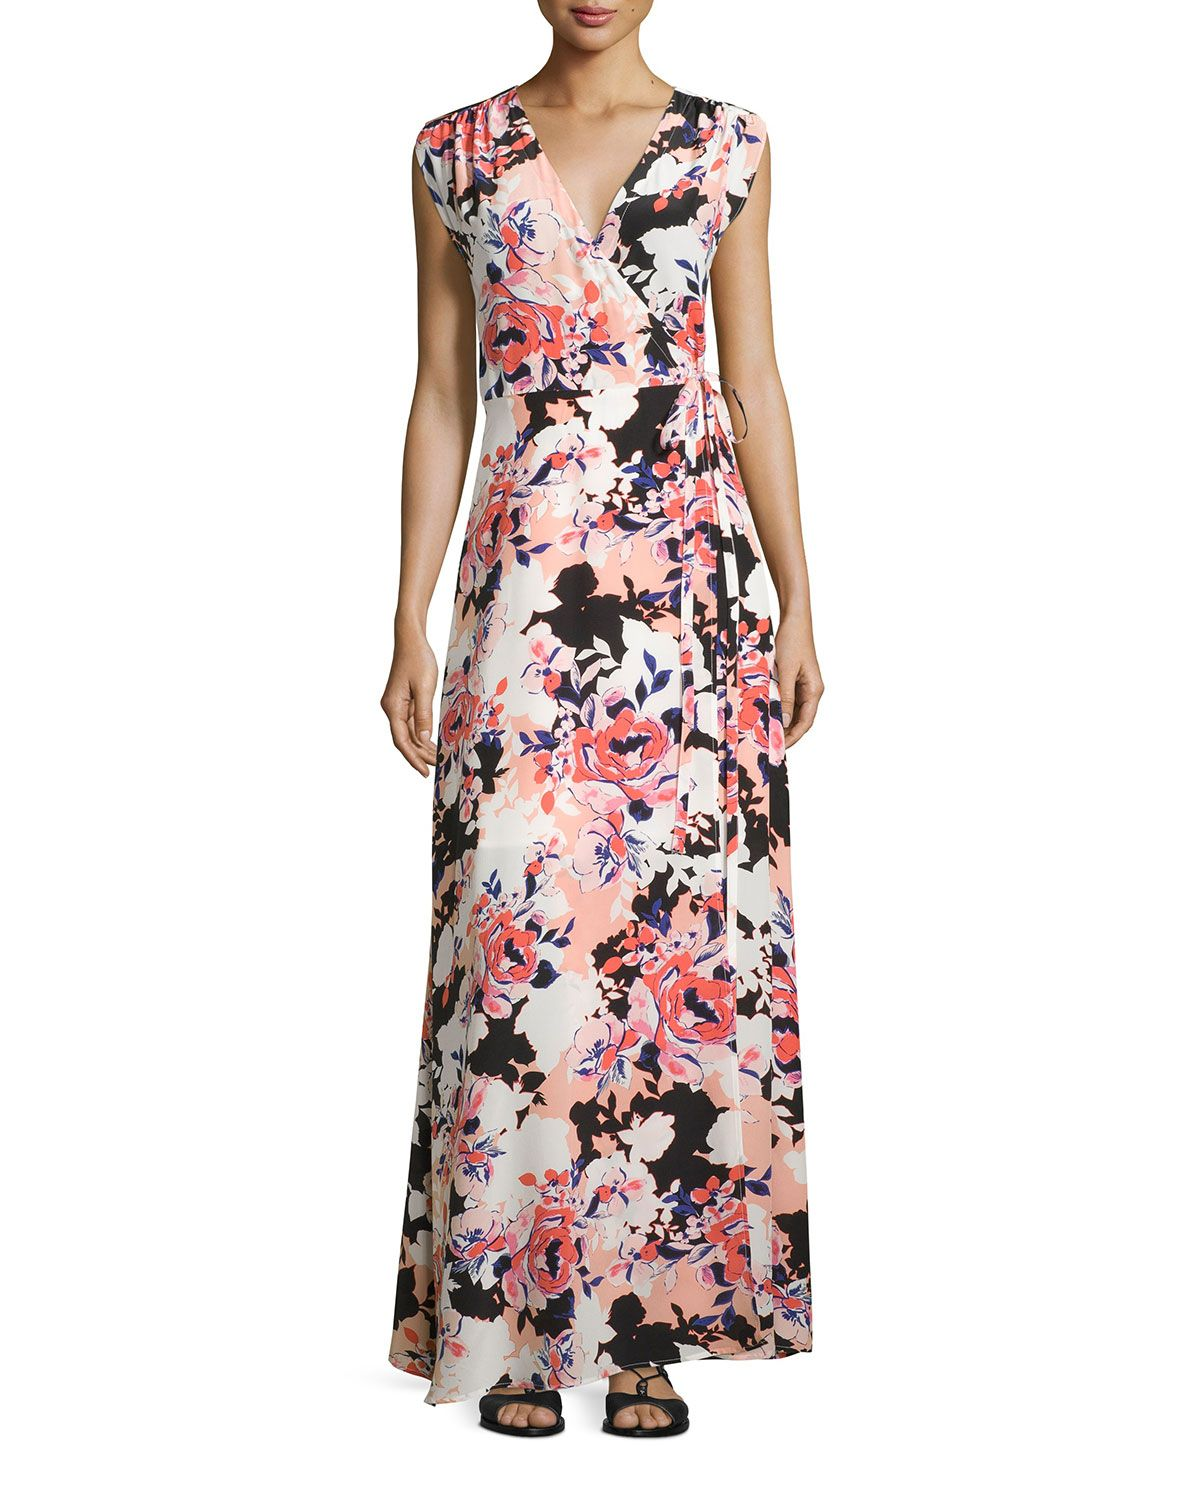 Womens Rose Satin Floral Sleeveless Dress Yumi Sale Looking For 4YuleA